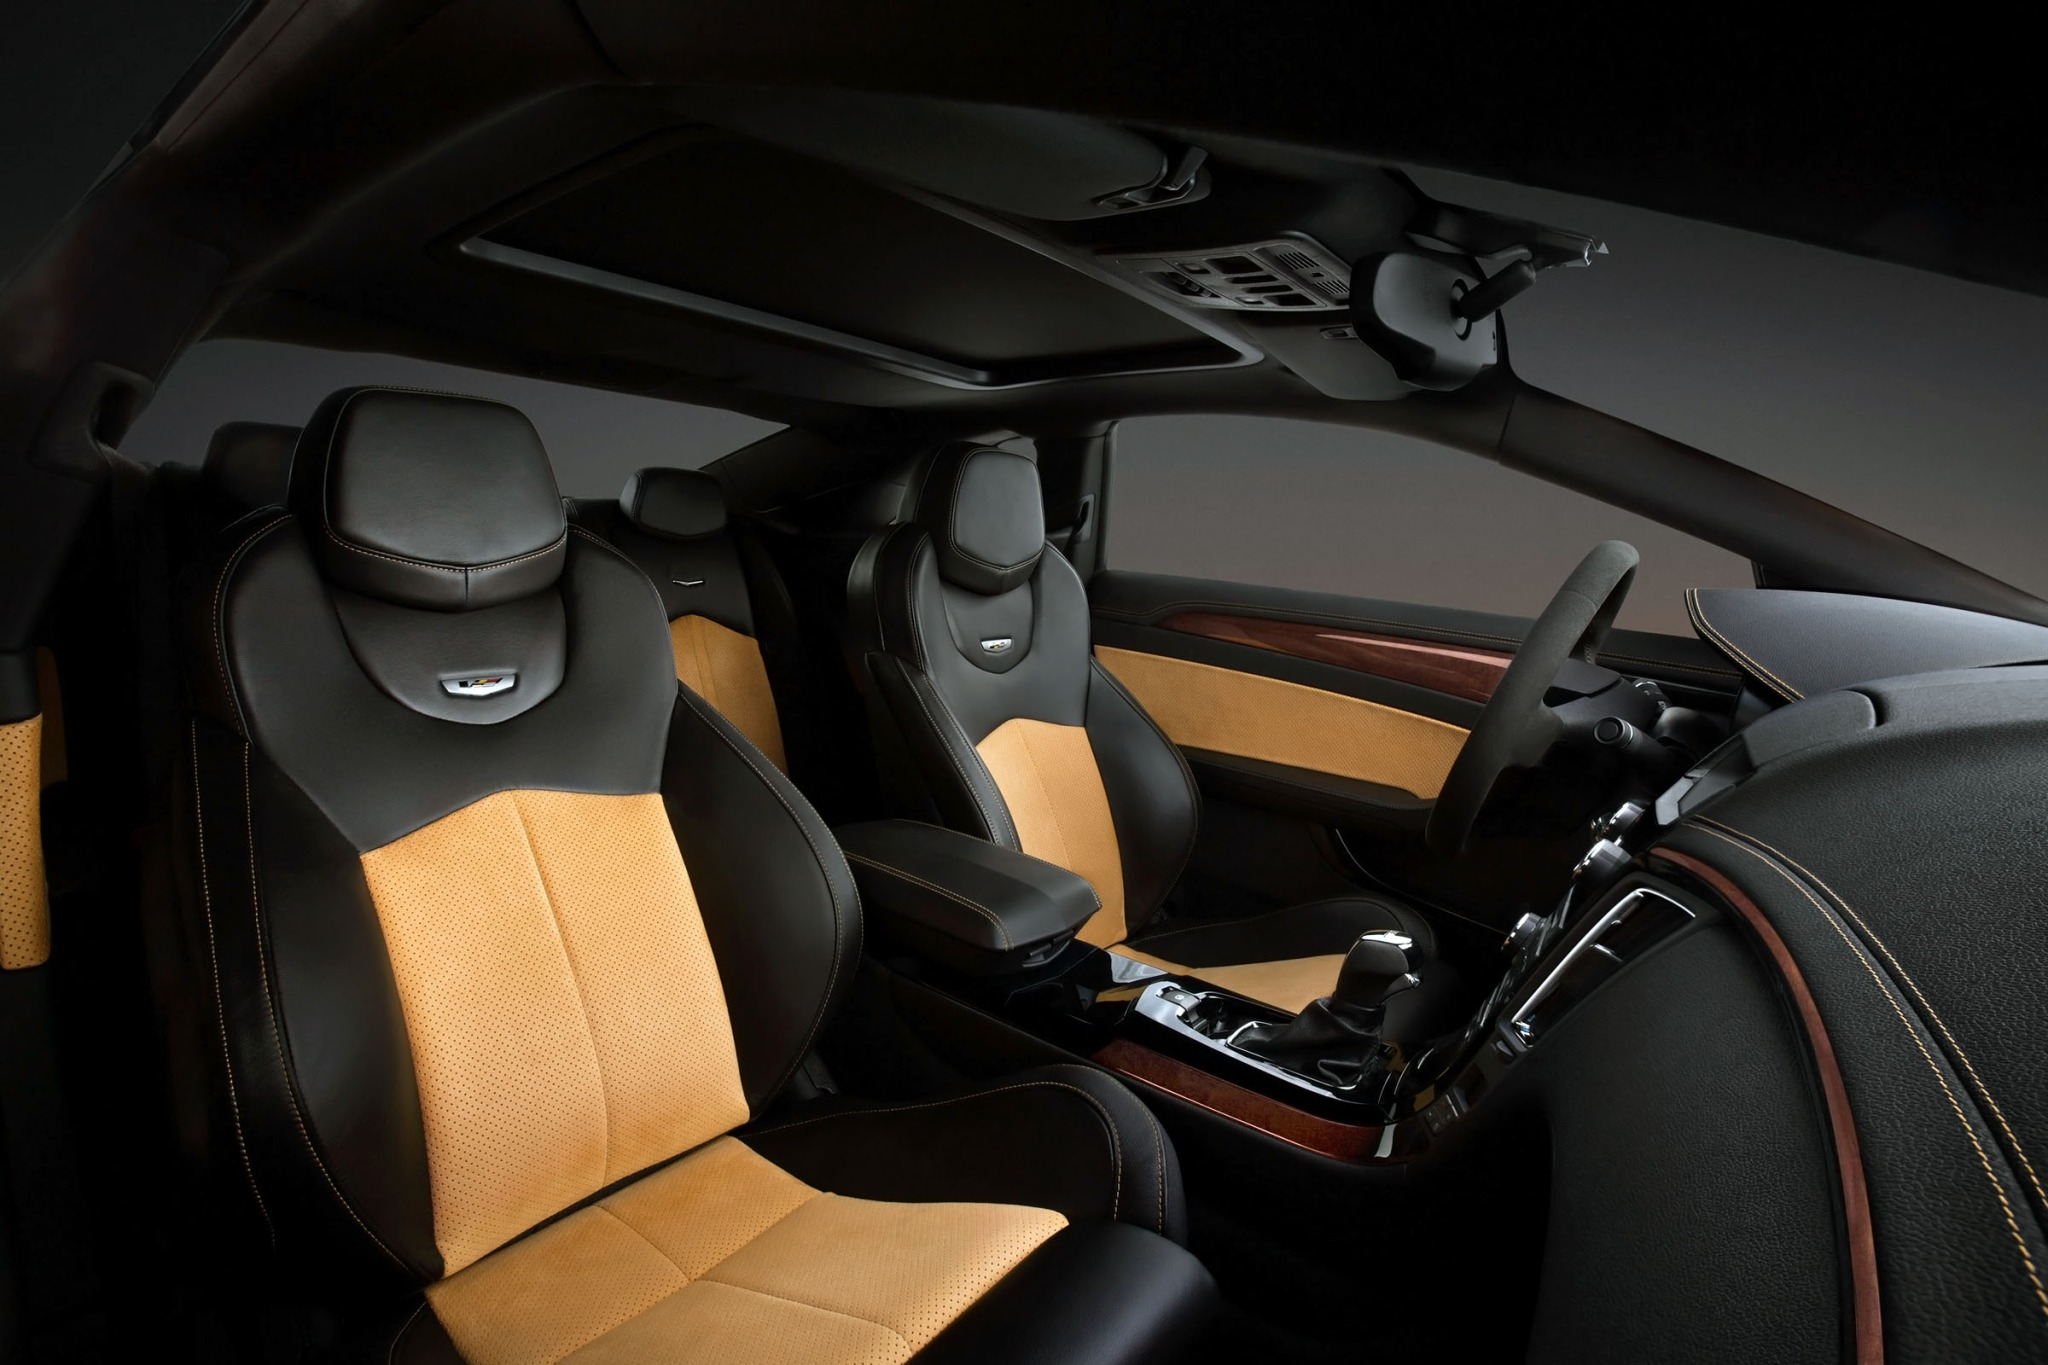 2012 Cadillac CTS-V Coupe exterior #9